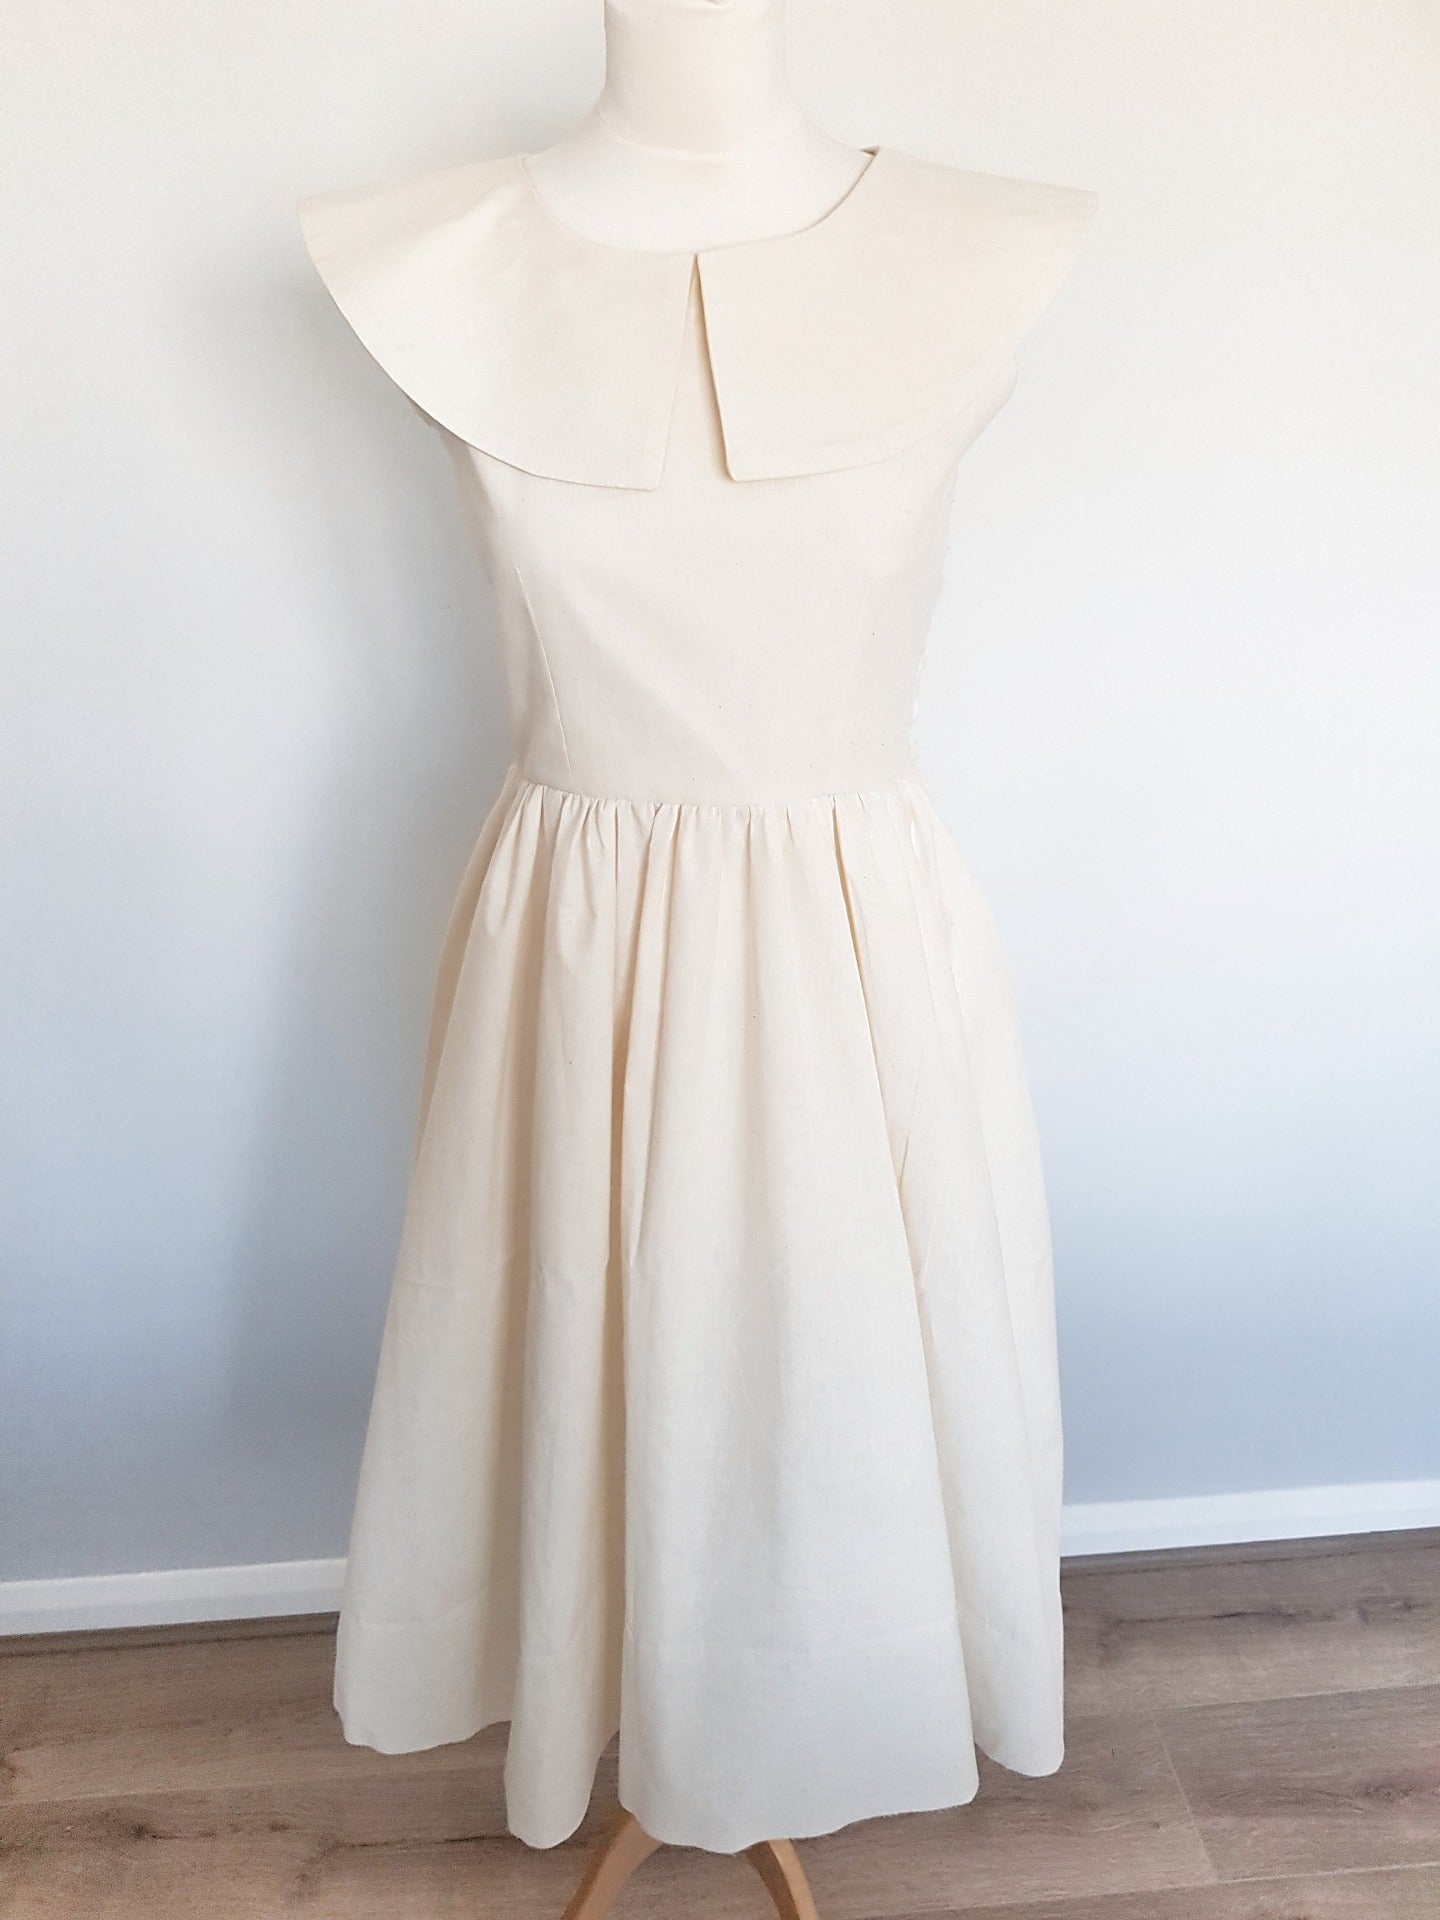 1950s vintage style summer midi dress toile slow fashion brand how its made uk yesterday's girl